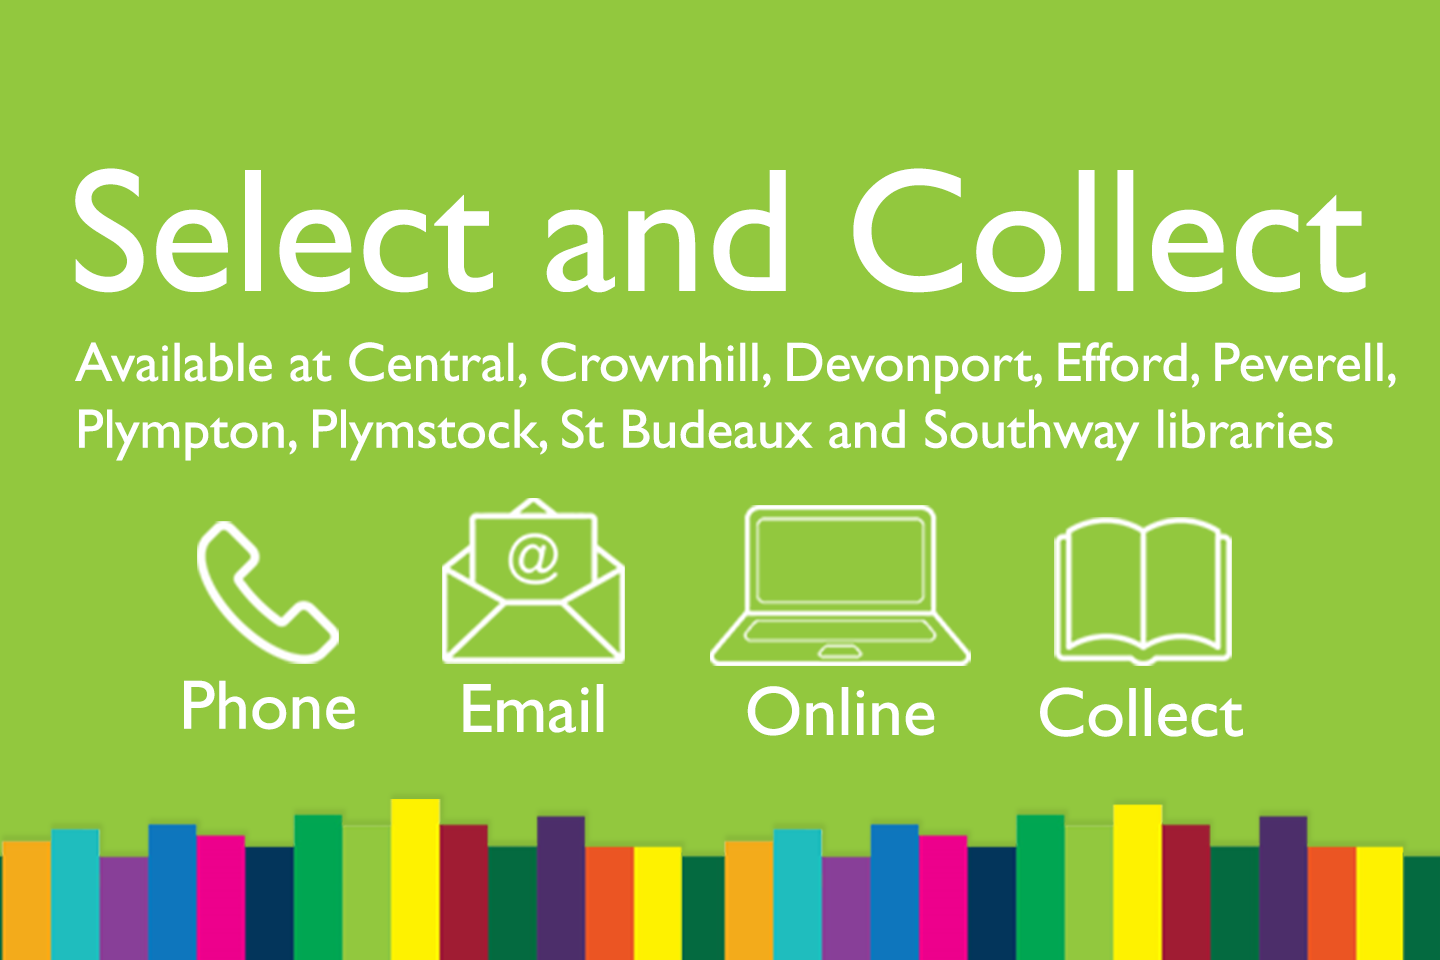 Select and Collect service